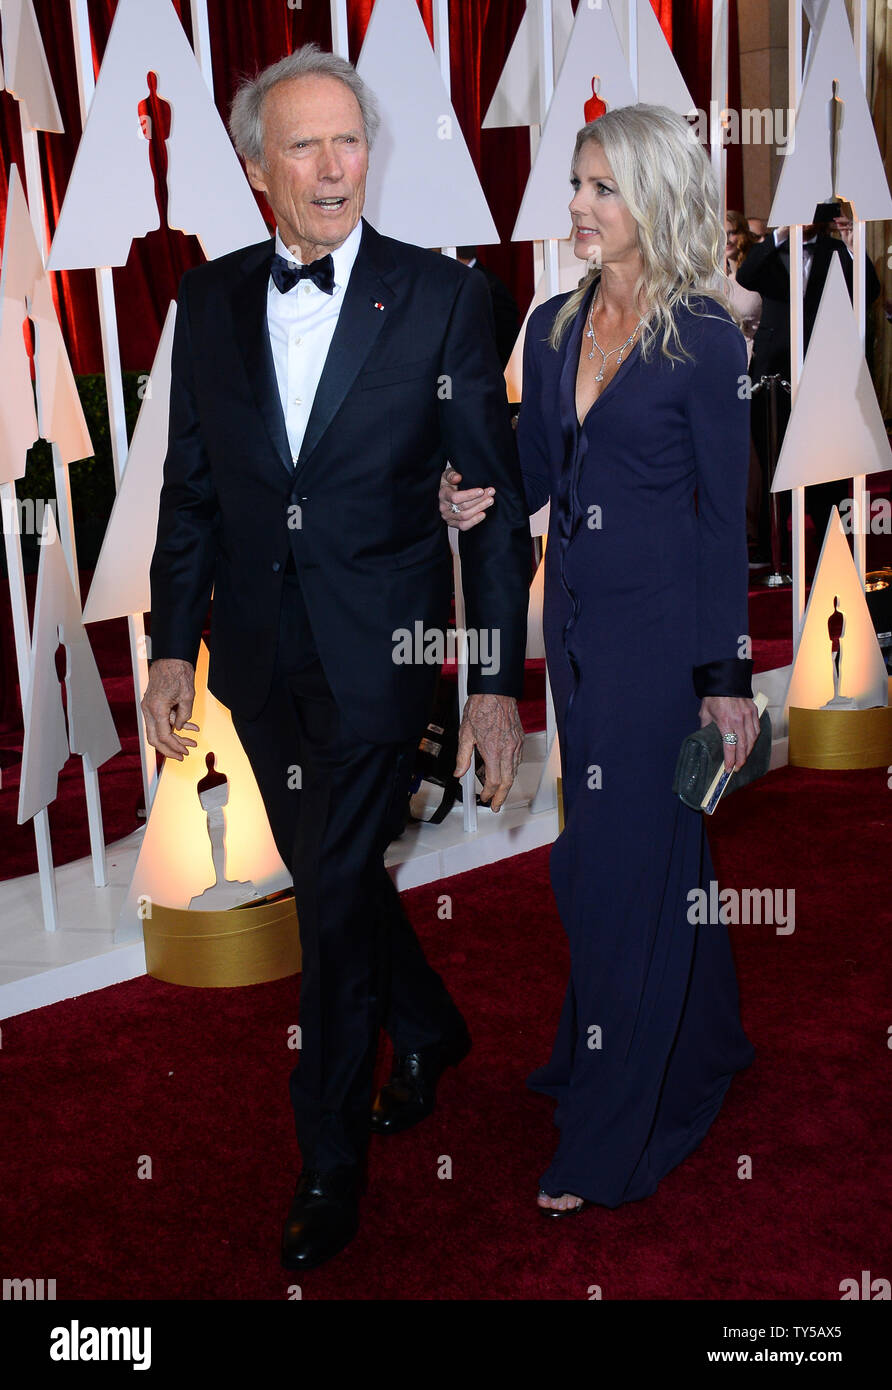 Director Clint Eastwood (L) and Christina Sandera arrive at the 87th Academy Awards at the Hollywood & Highland Center in Los Angeles on February 22, 2015. Photo by Jim Ruymen/UPI Stock Photo